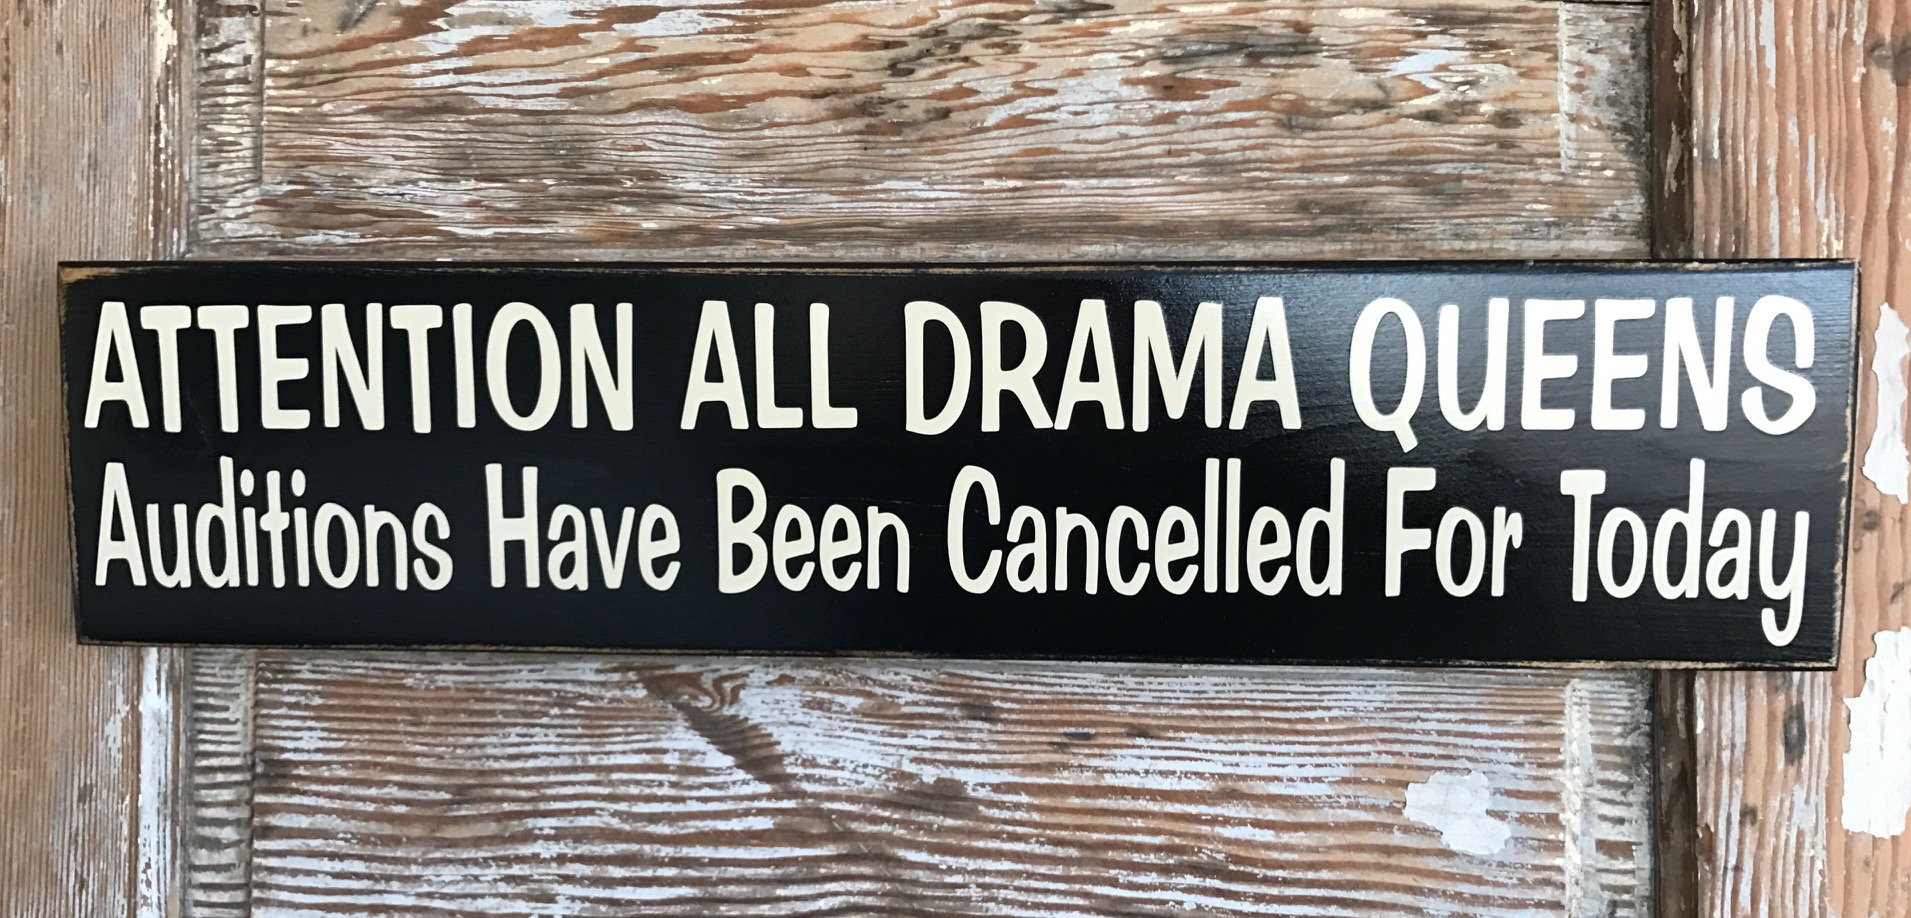 Attention All Drama Queens: Auditions Have Been Cancelled For Today.  Wood Sign